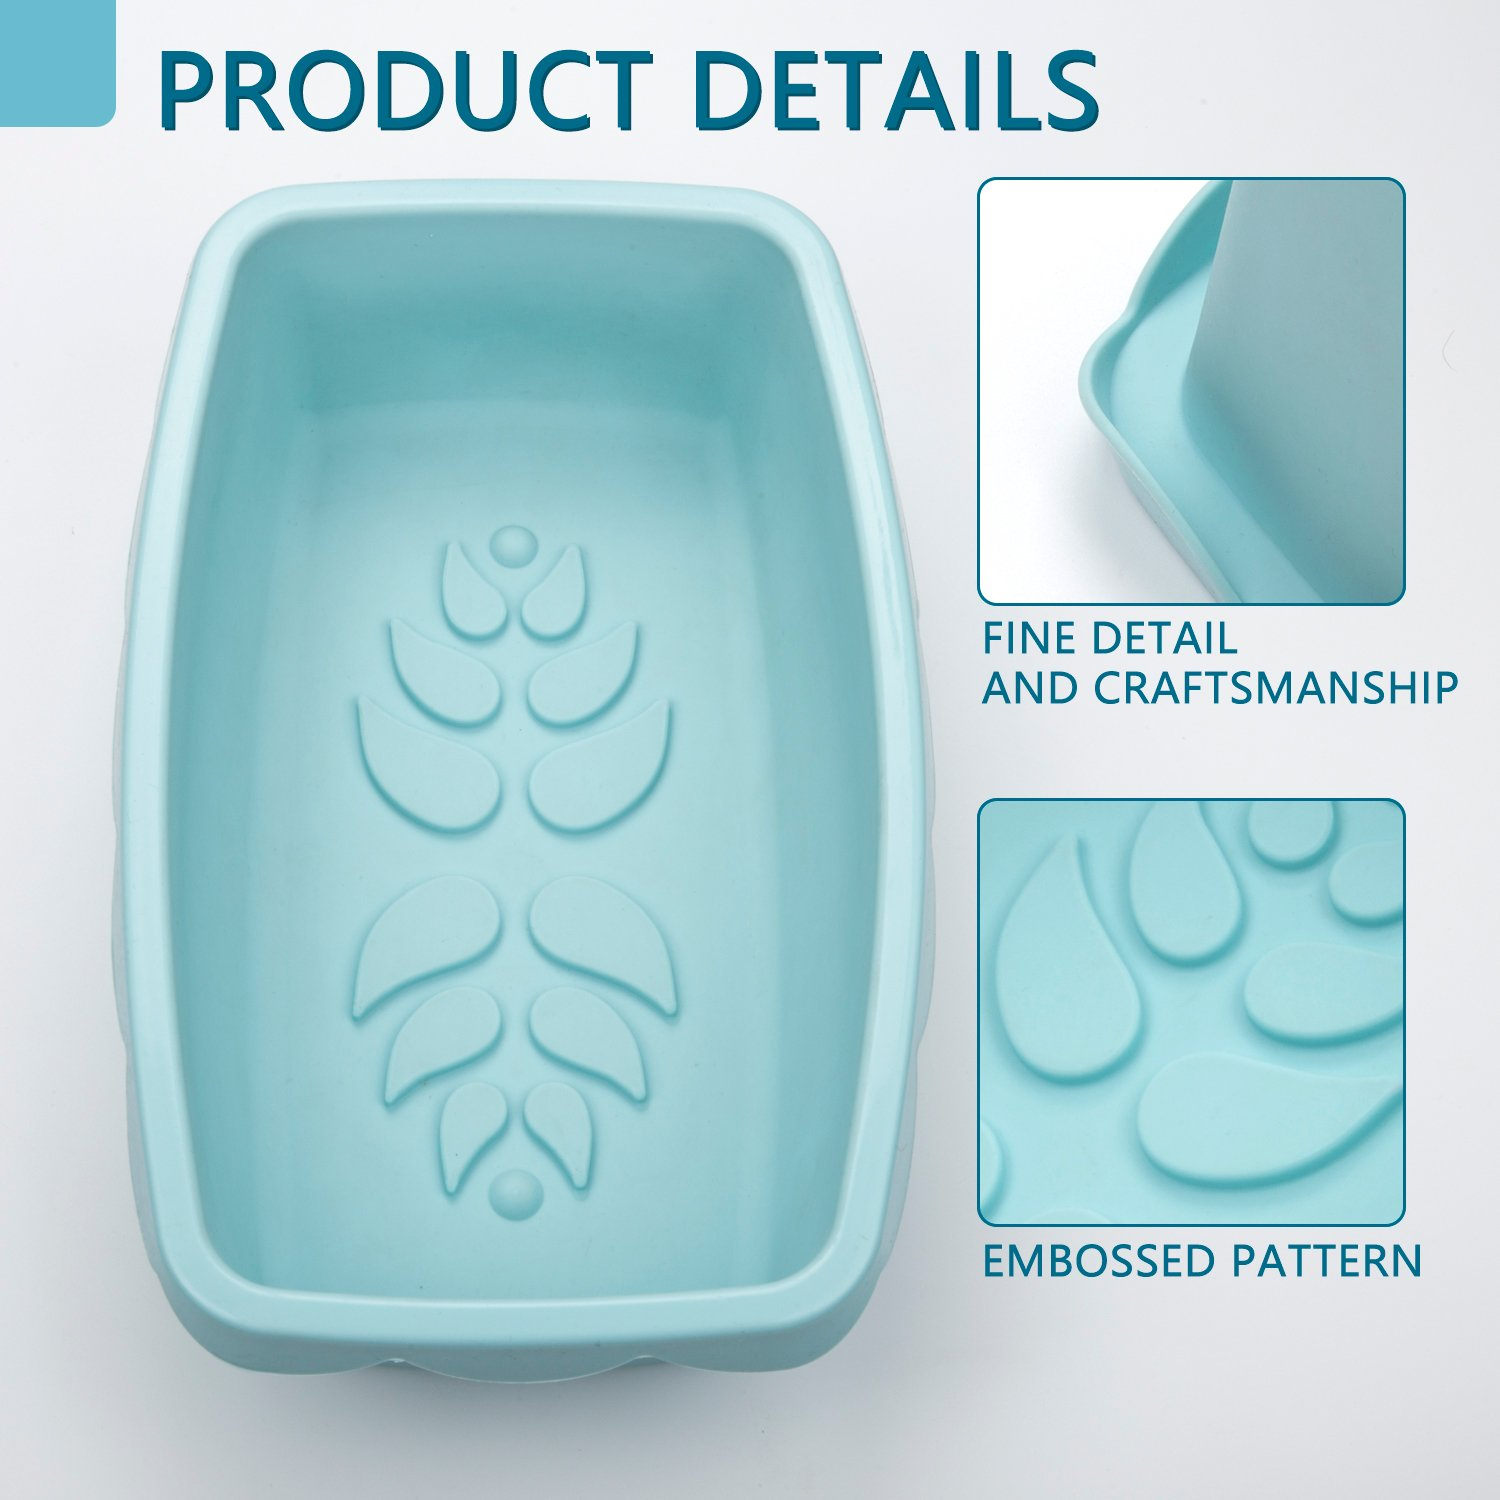 Silicone Loaf Pan Nonstick Bread Cake Baking Mold Rectangular with Decorative Pattern for Homemade Cakes Breads Meatloaf - 10.5 x 6.5 x 3.0 Inch - Microwave Dishwasher Safe, BPA Free by DOSHH (Image #3)